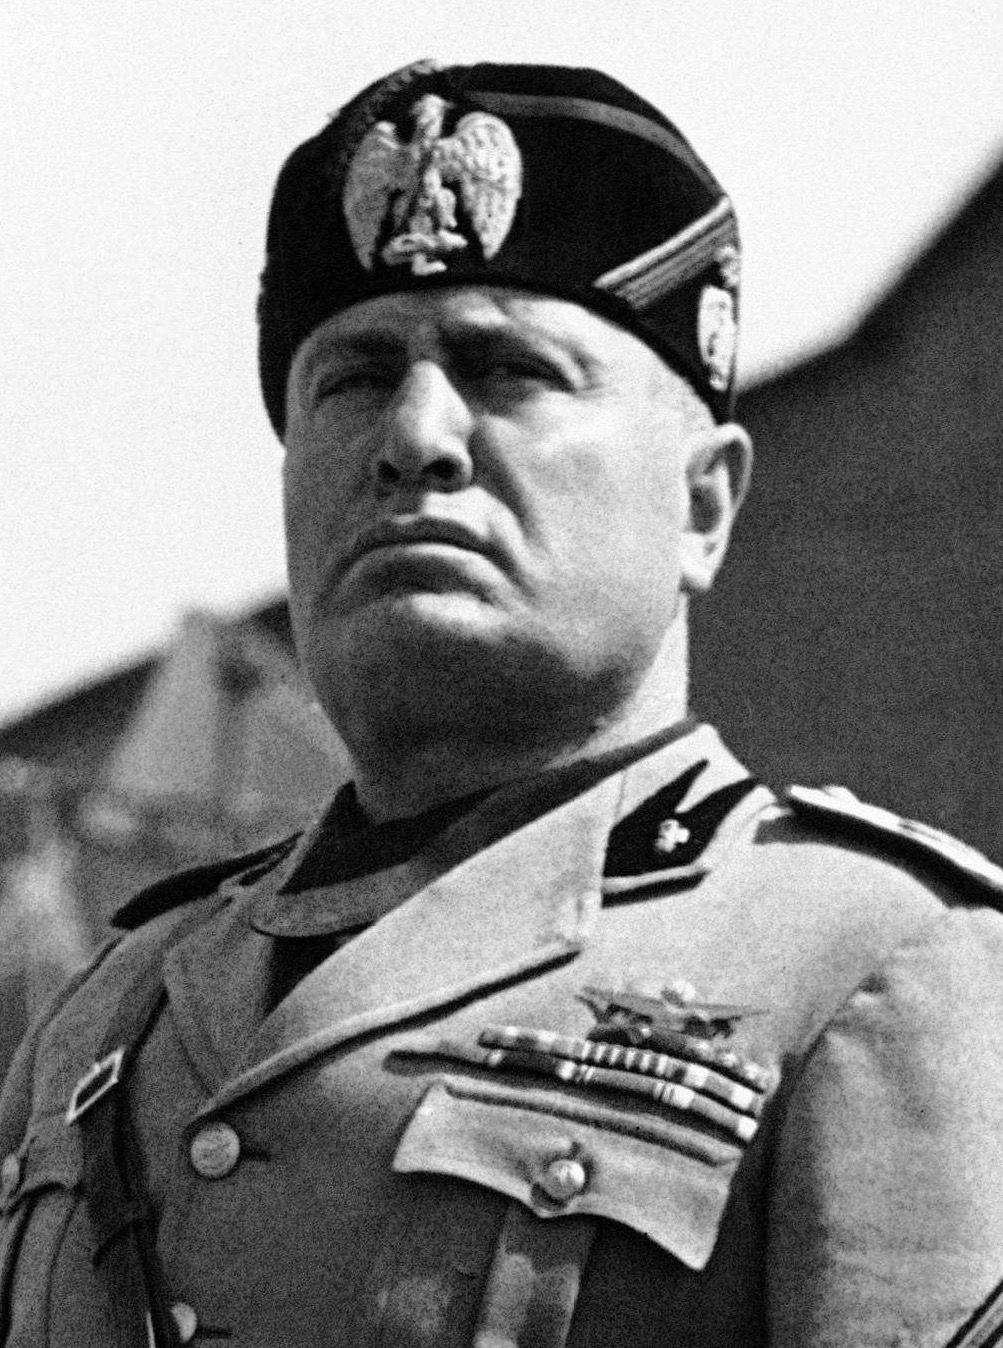 Benito Mussolini: Italy In 1919, Mussolini formed the Fascist Party after serving in WWI; he got the support of unemployed war veterans The veterans were organized into armed